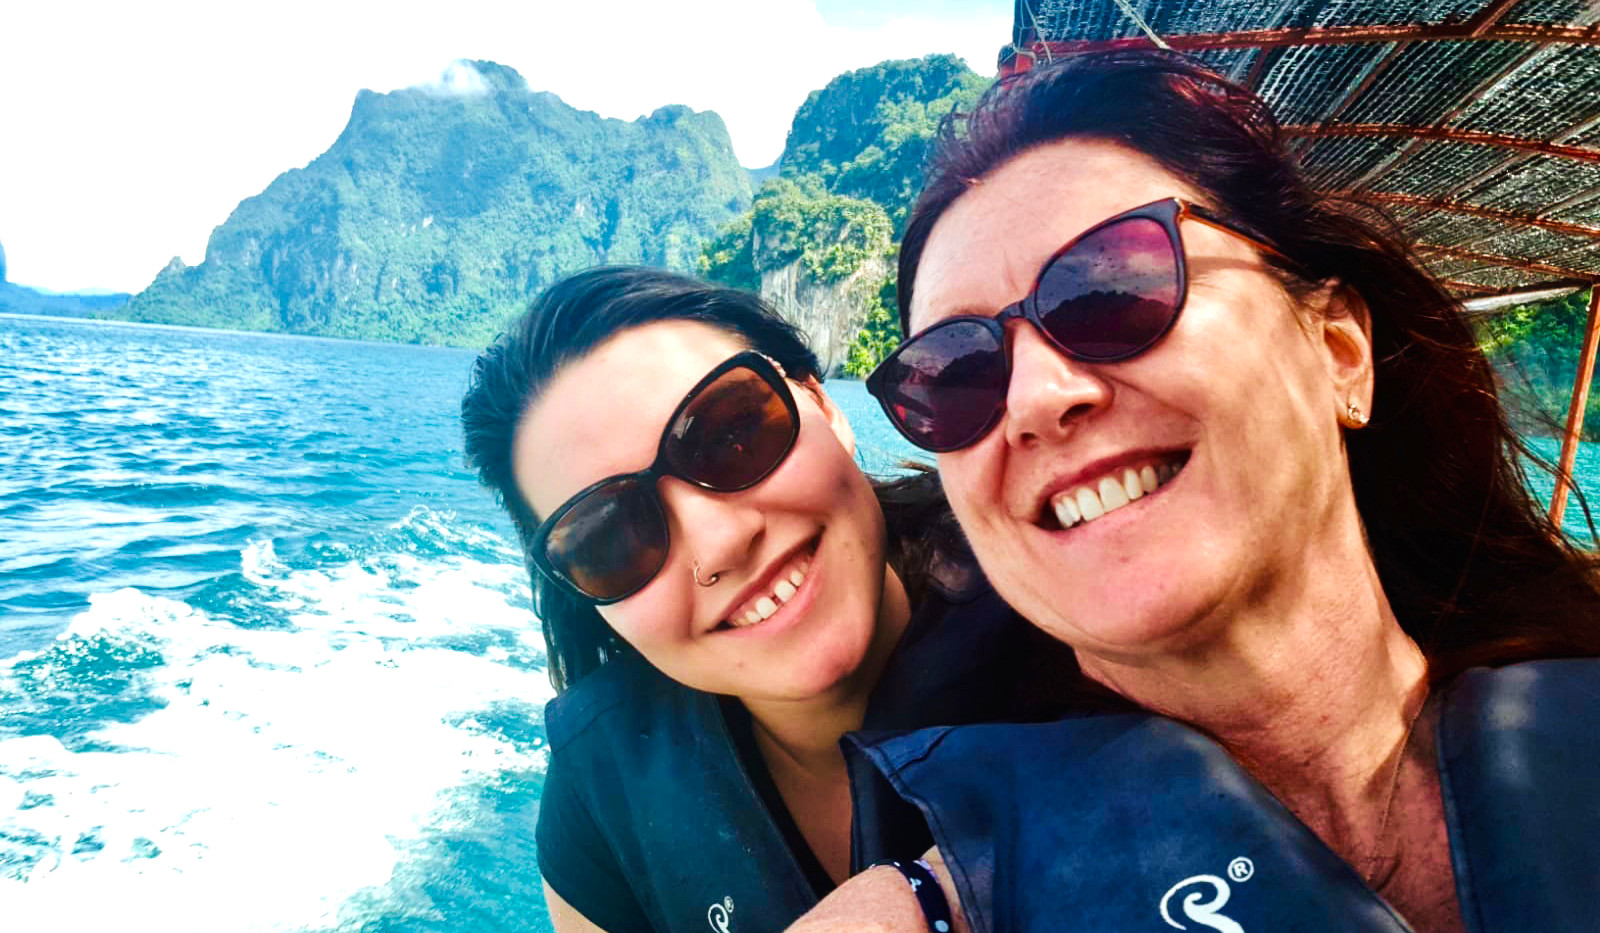 Felice and Avril on Khao Sok boat trip, Thailand